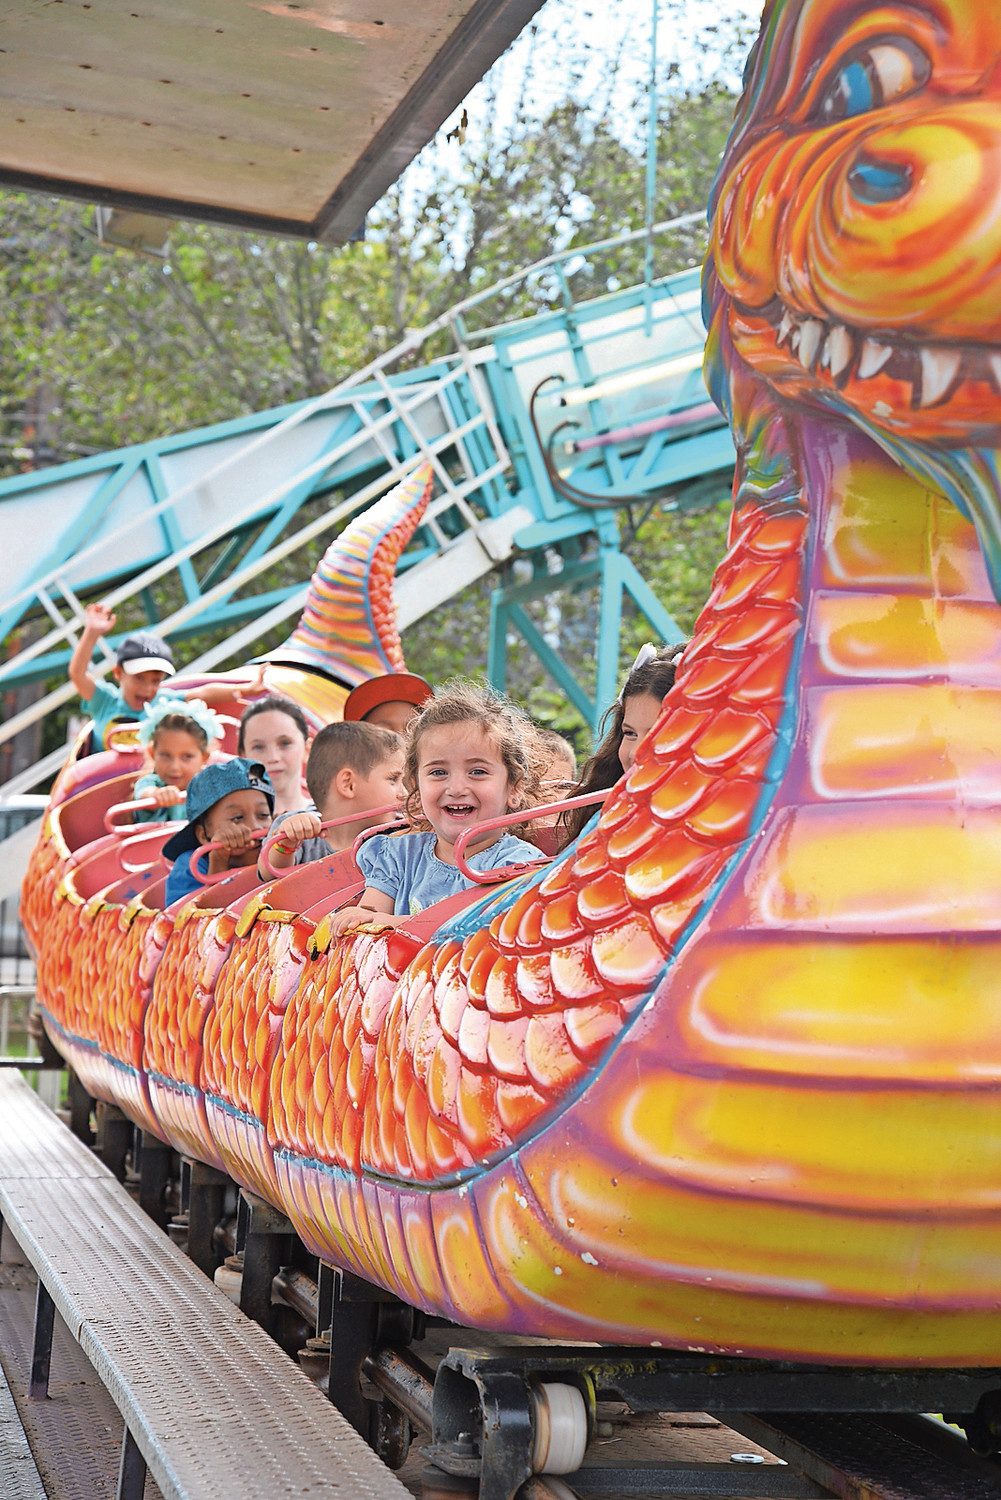 The Dragon Wheel roller coaster and other rides, attractions and food are all part of the 33rd annual Community Chest South Shore Fair this weekend at Andrew J. Parise Cedarhurst Park.